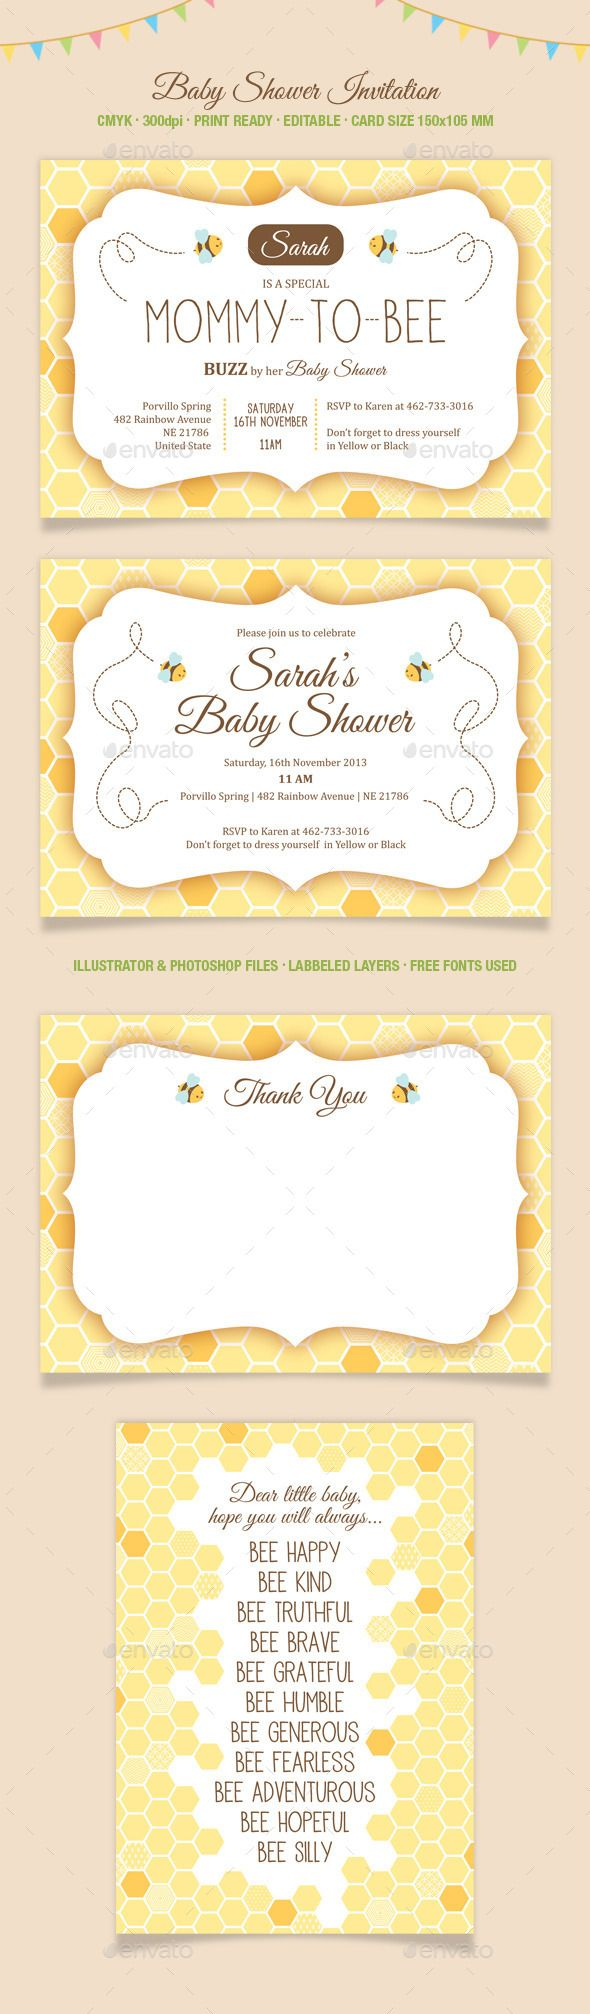 Fun And Cute Baby Shower Invitation Card Size 150105 Mm